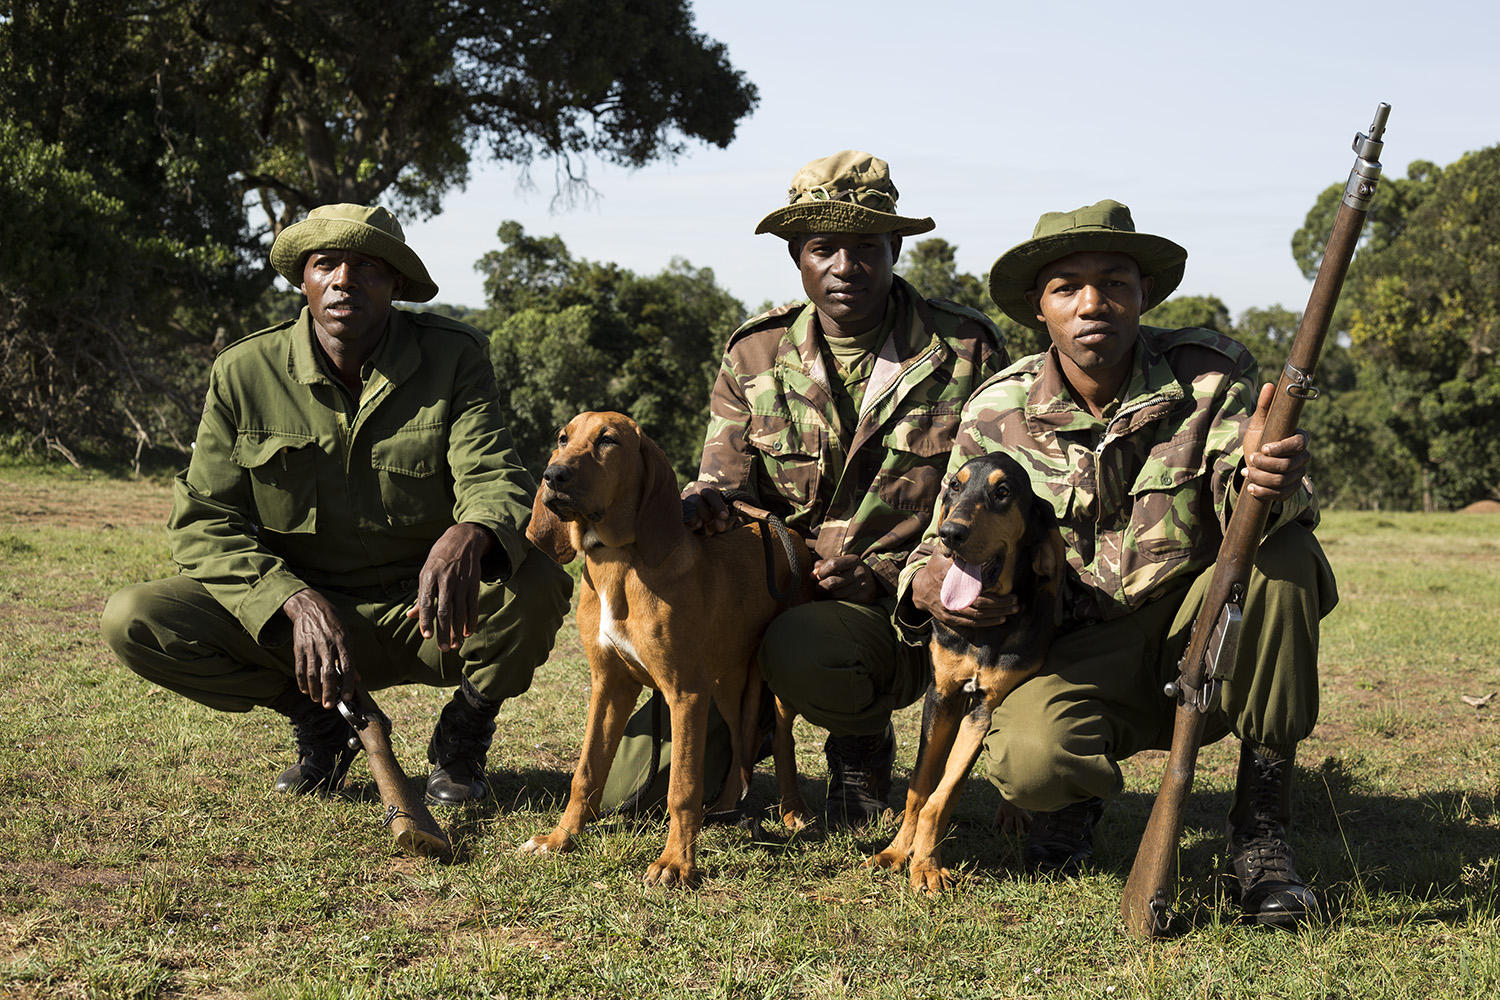 Sniffer dogs rangers